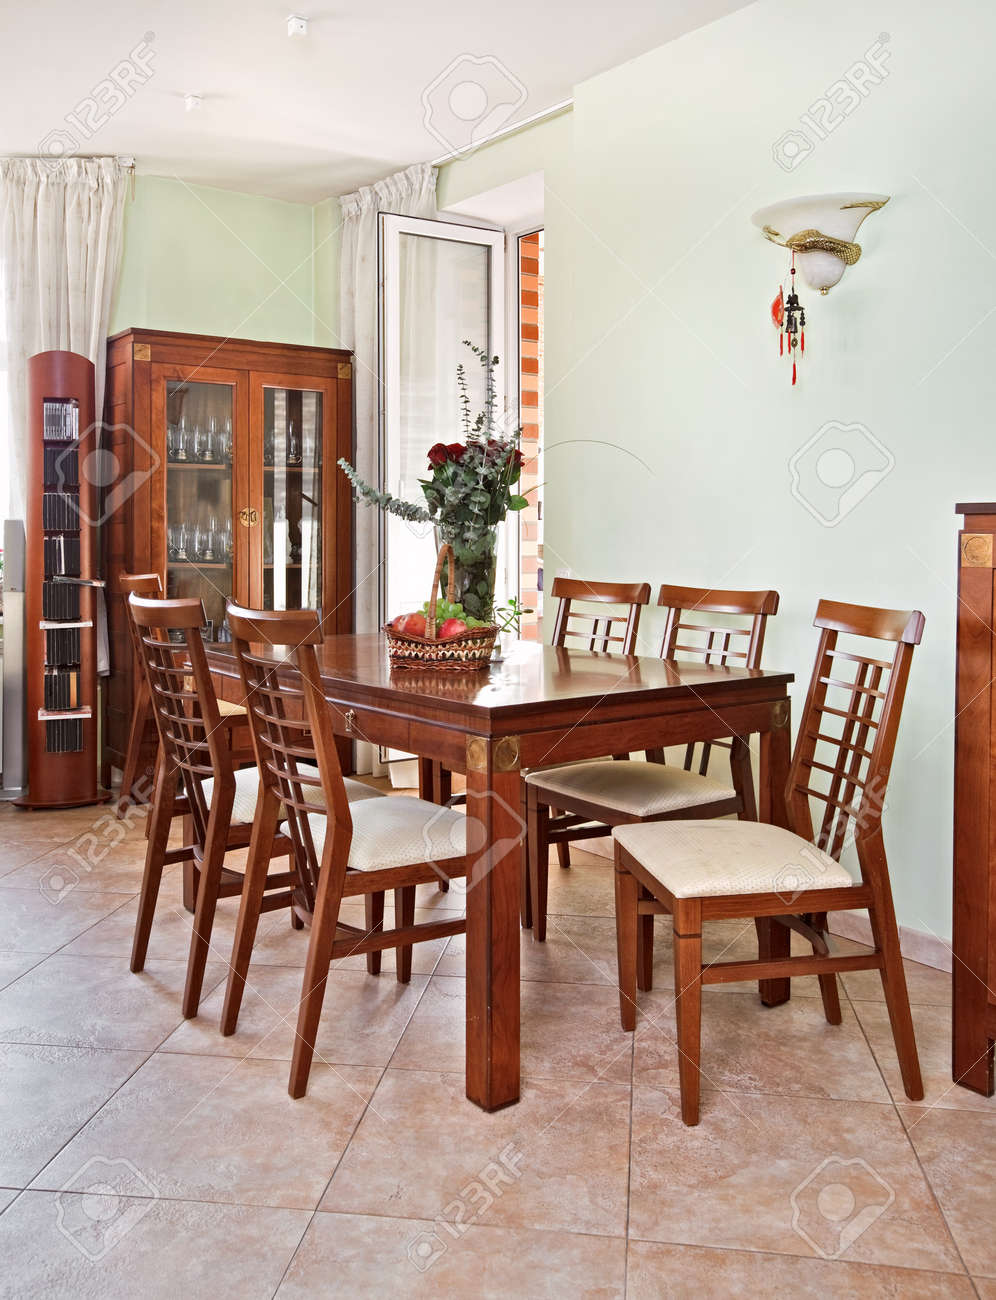 Dining room interior with classic wooden furniture Stock Photo - 7350601